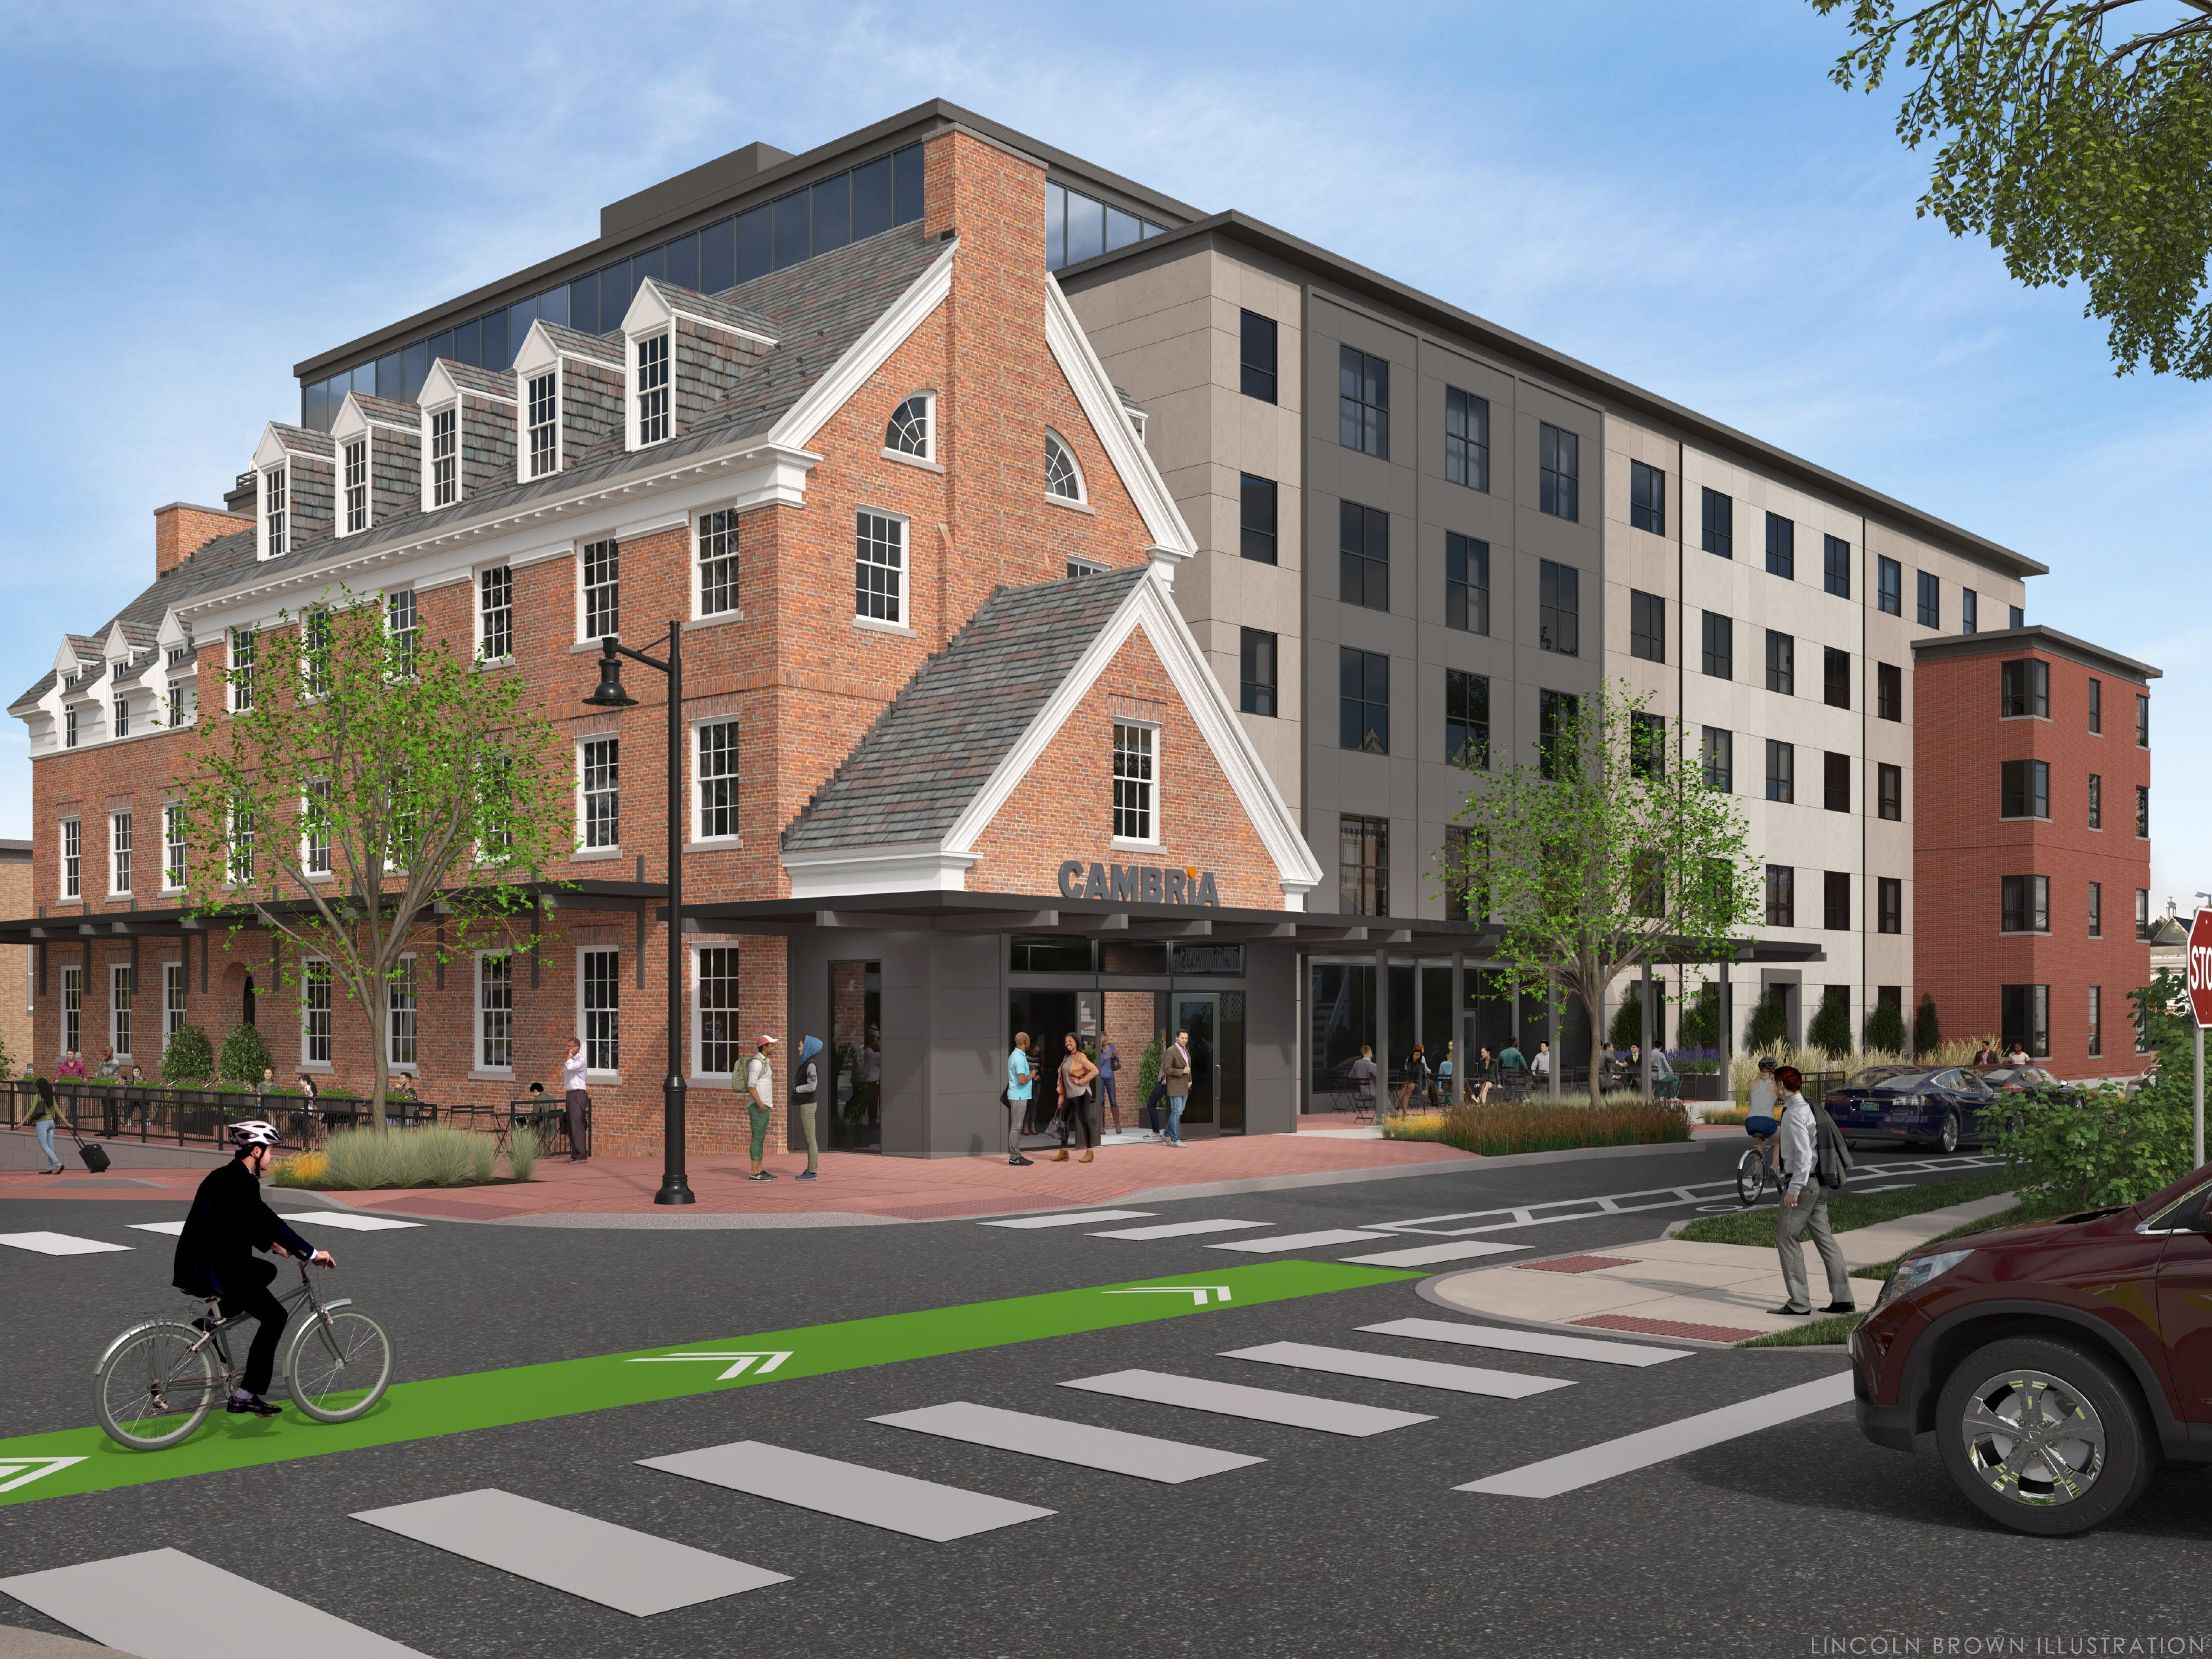 Proposed: a 140-room hotel at the historic downtown YMCA in Burlington. This illustration created by Lincoln Brown in early 2019 is a view of the project at South Union and College streets, looking northwest.